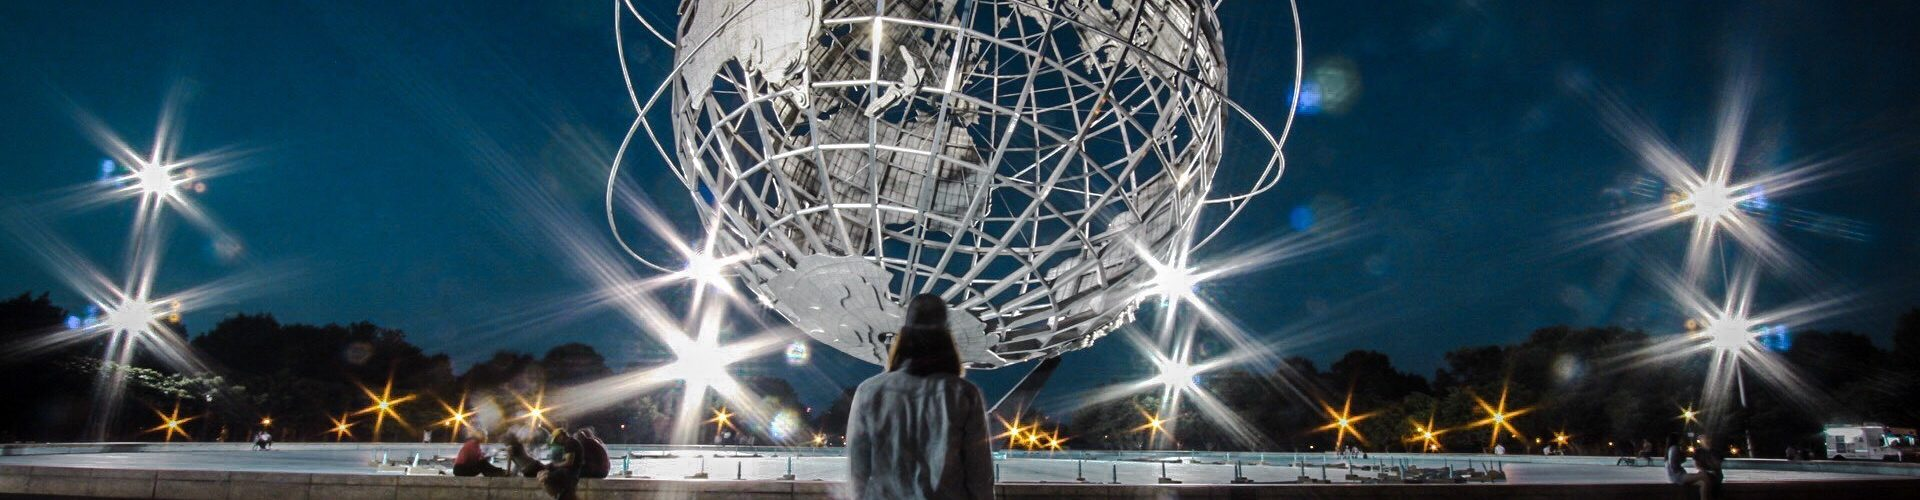 The Unisphere at night outside of the U.S. Open in Flushing, Queens